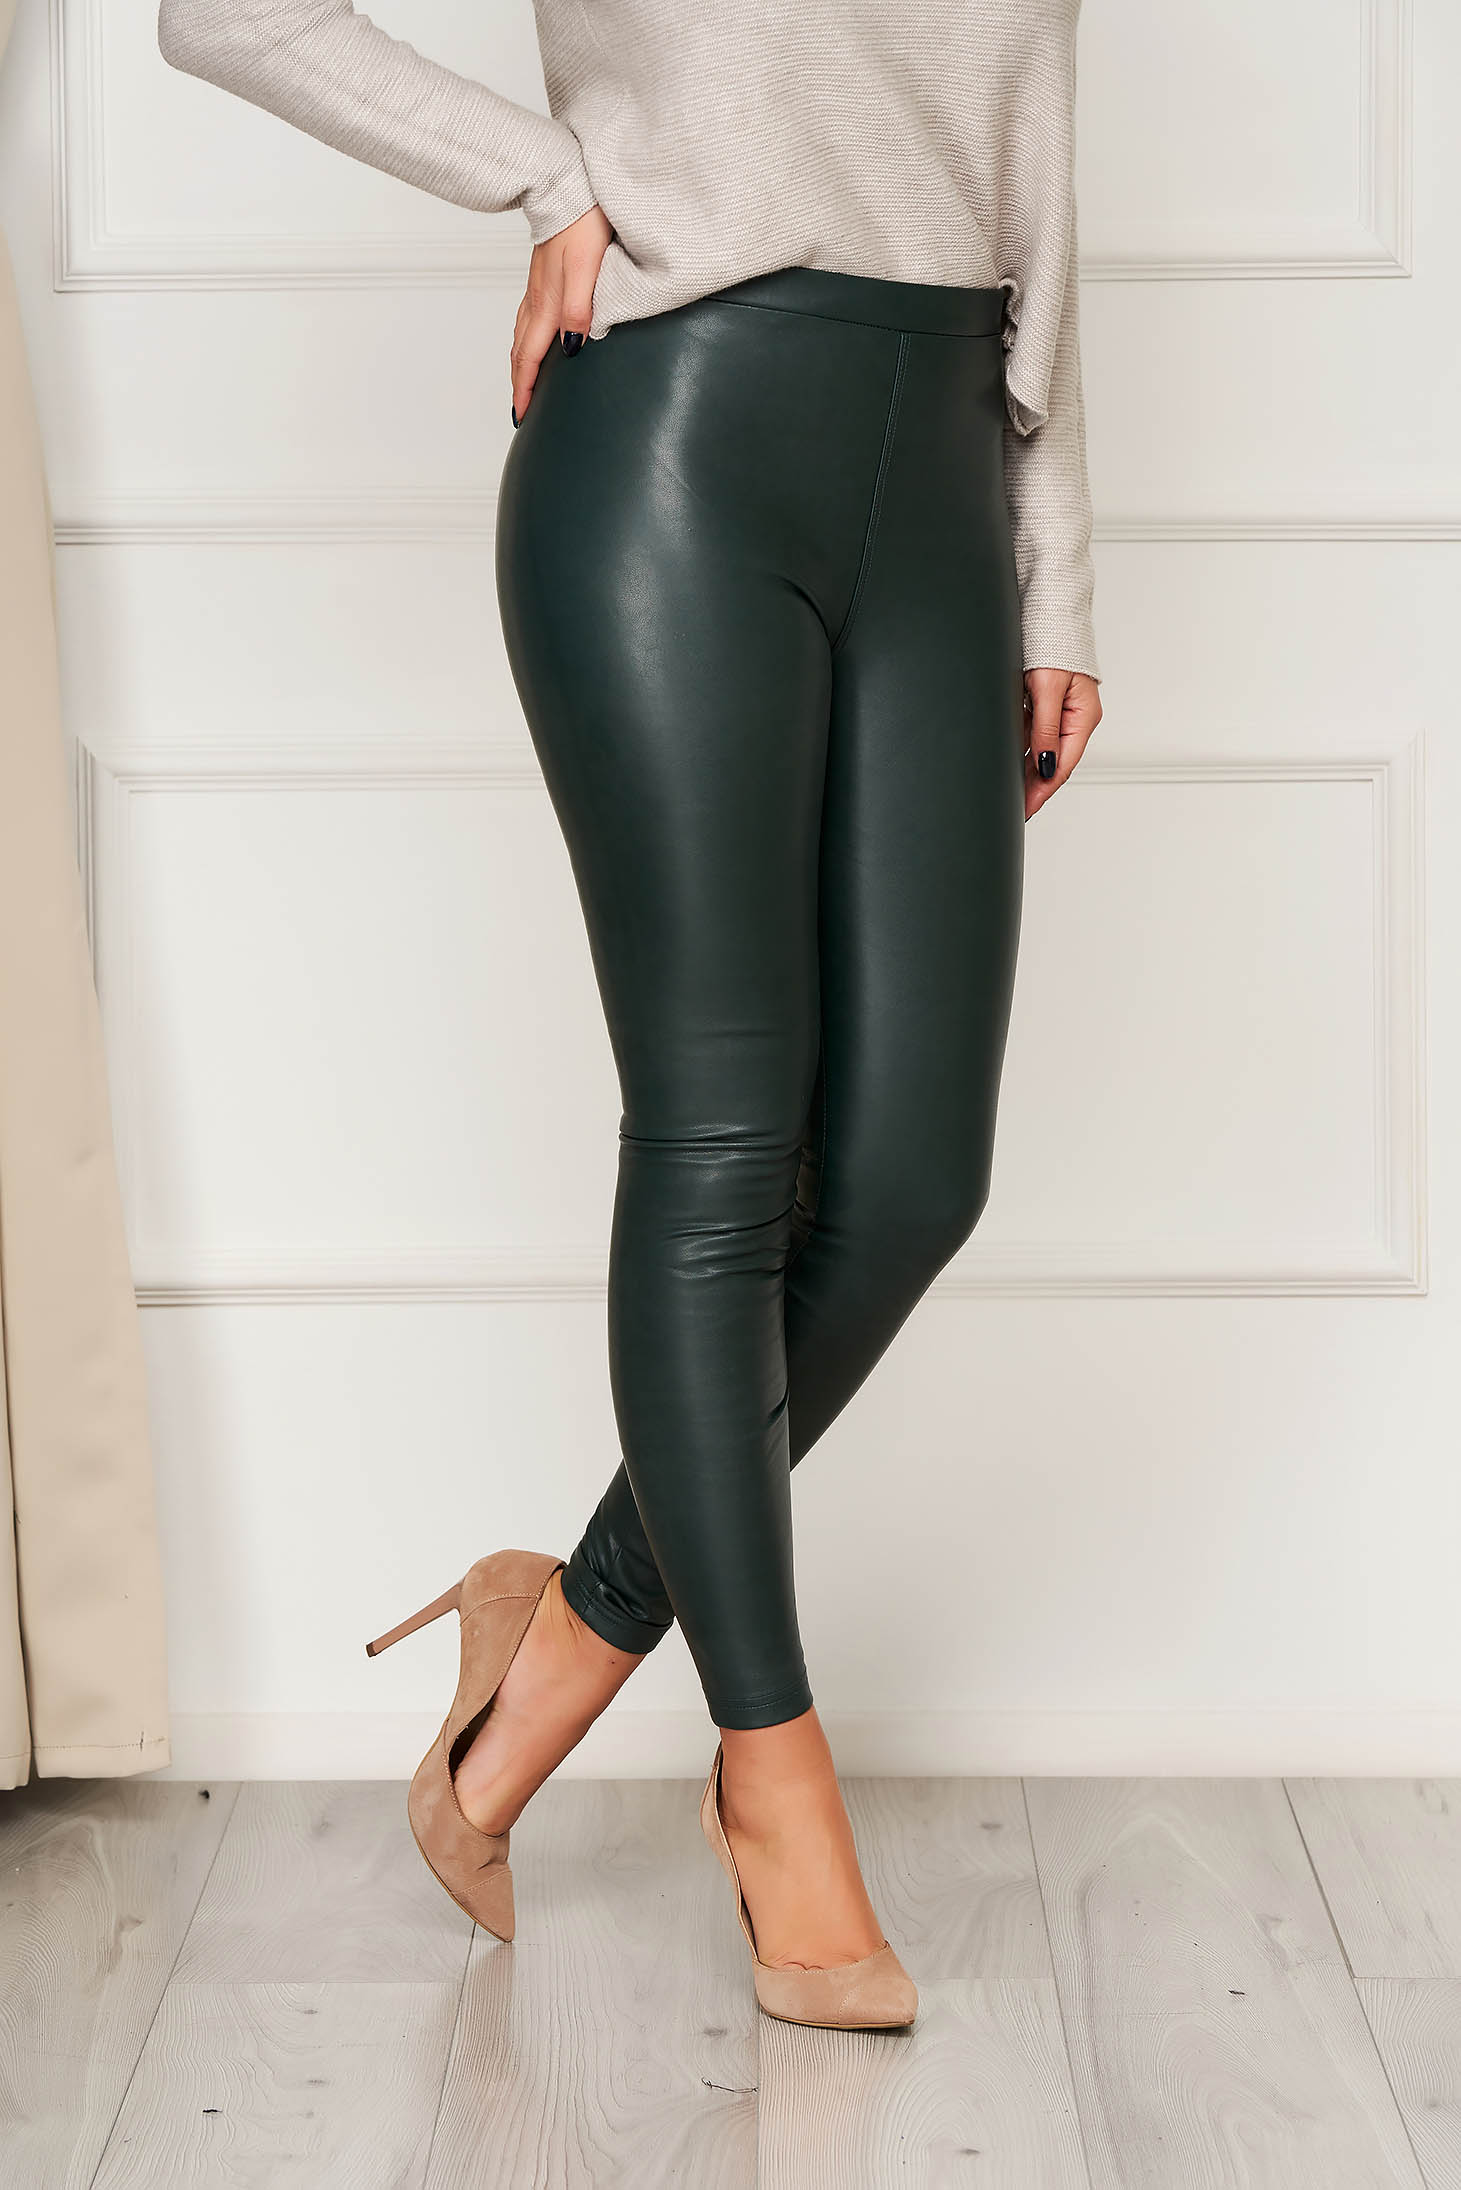 From ecological leather high waisted elastic waist darkgreen tights